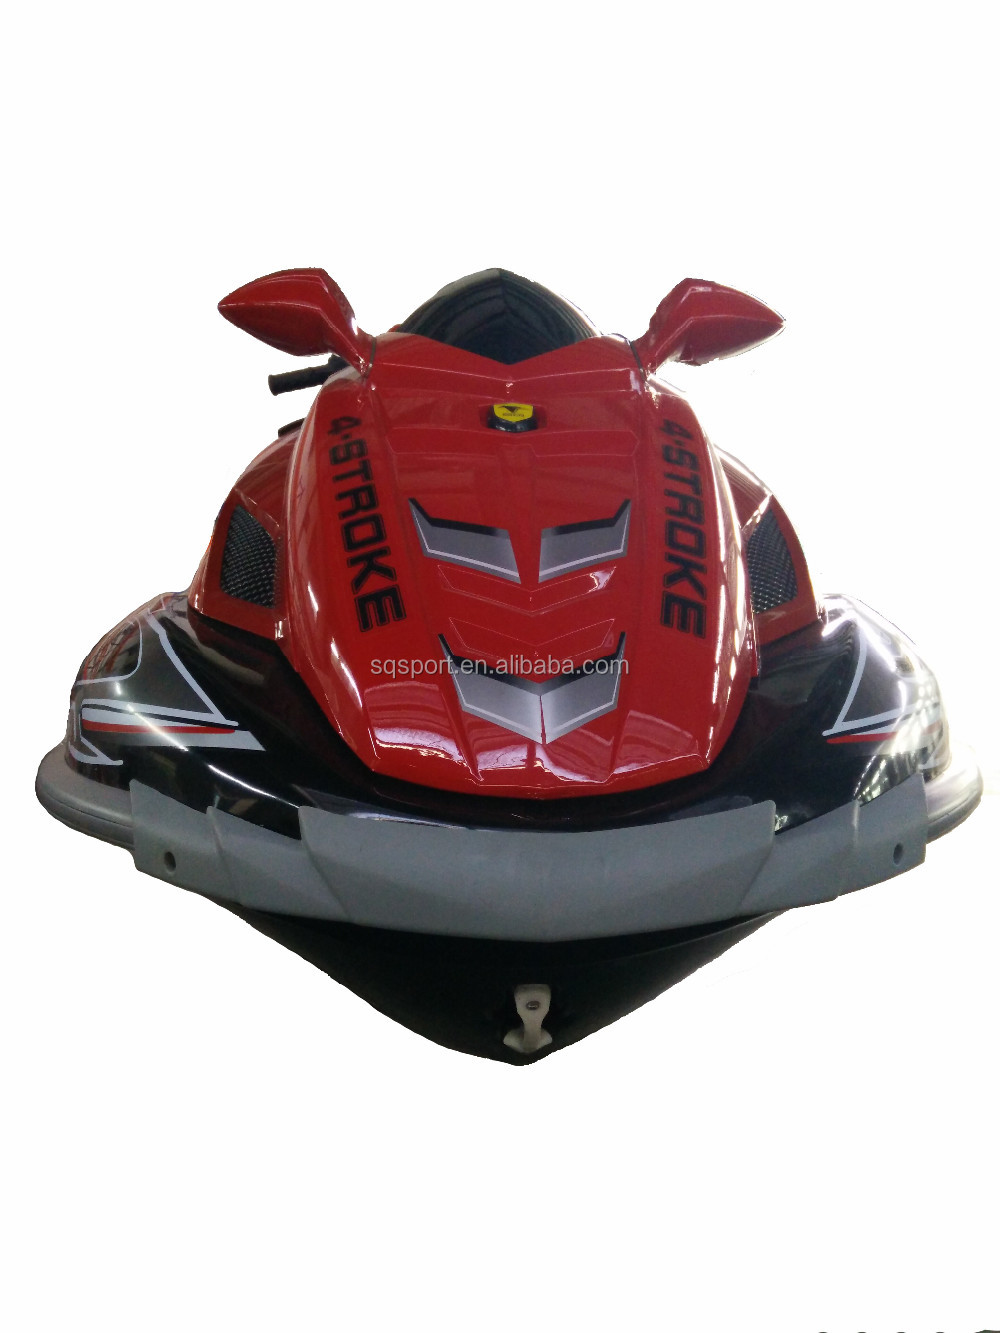 Attractive appearance 1100cc water sports cool jet ski